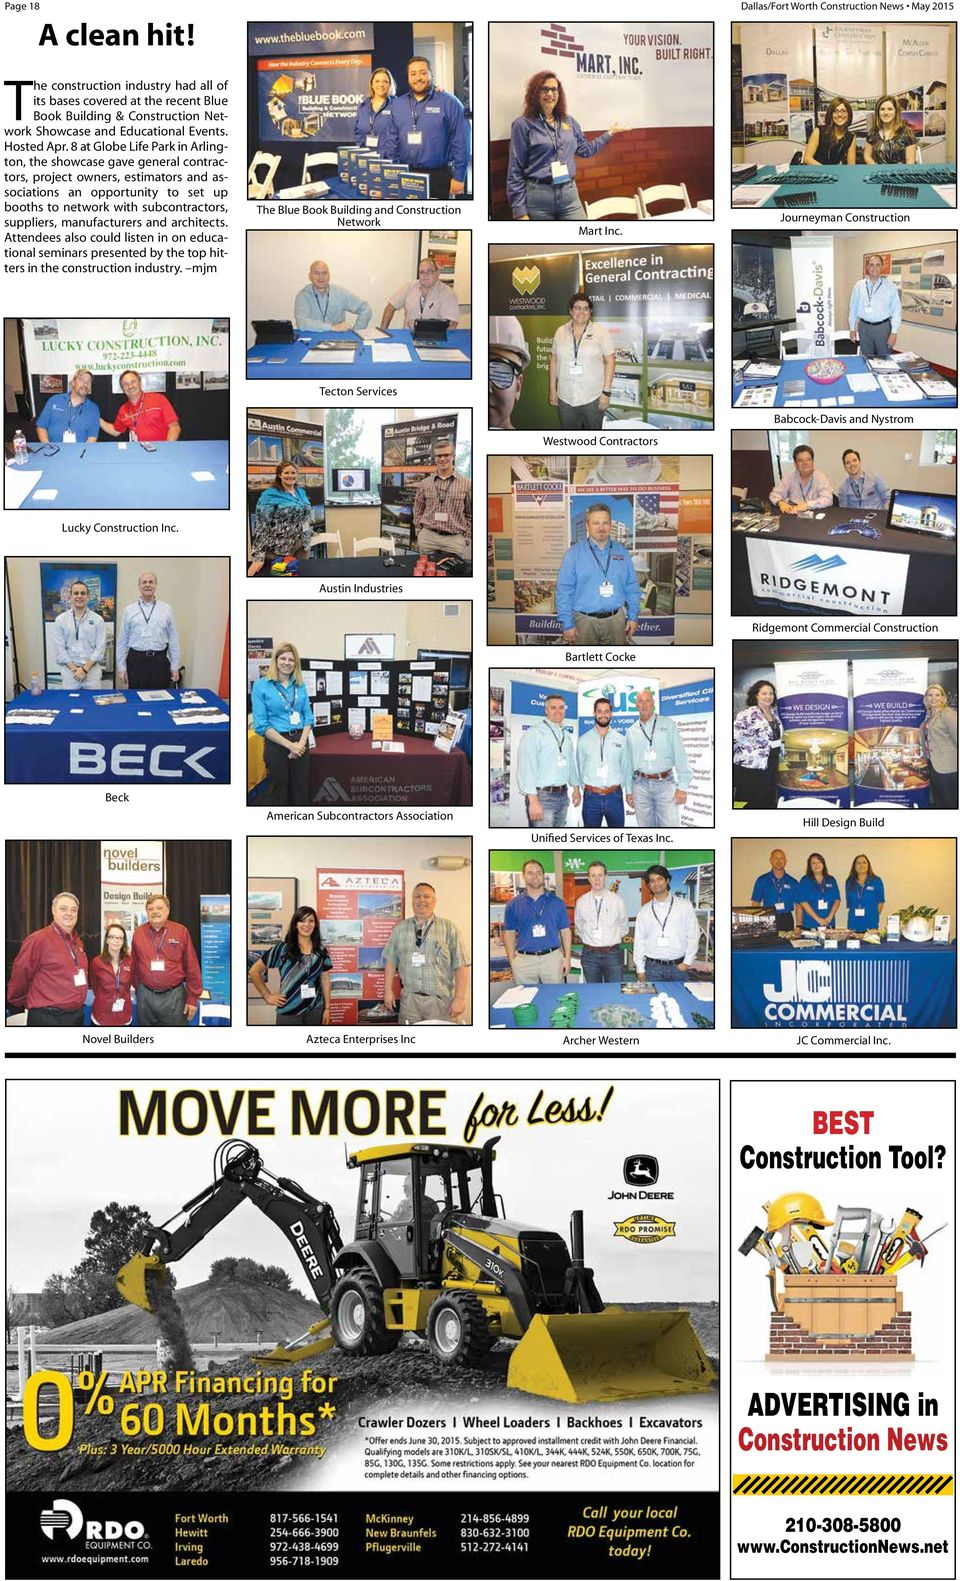 8 at Globe Life Park in Arlington, the showcase gave general contractors, project owners, estimators and associations an opportunity to set up booths to network with subcontractors, suppliers,